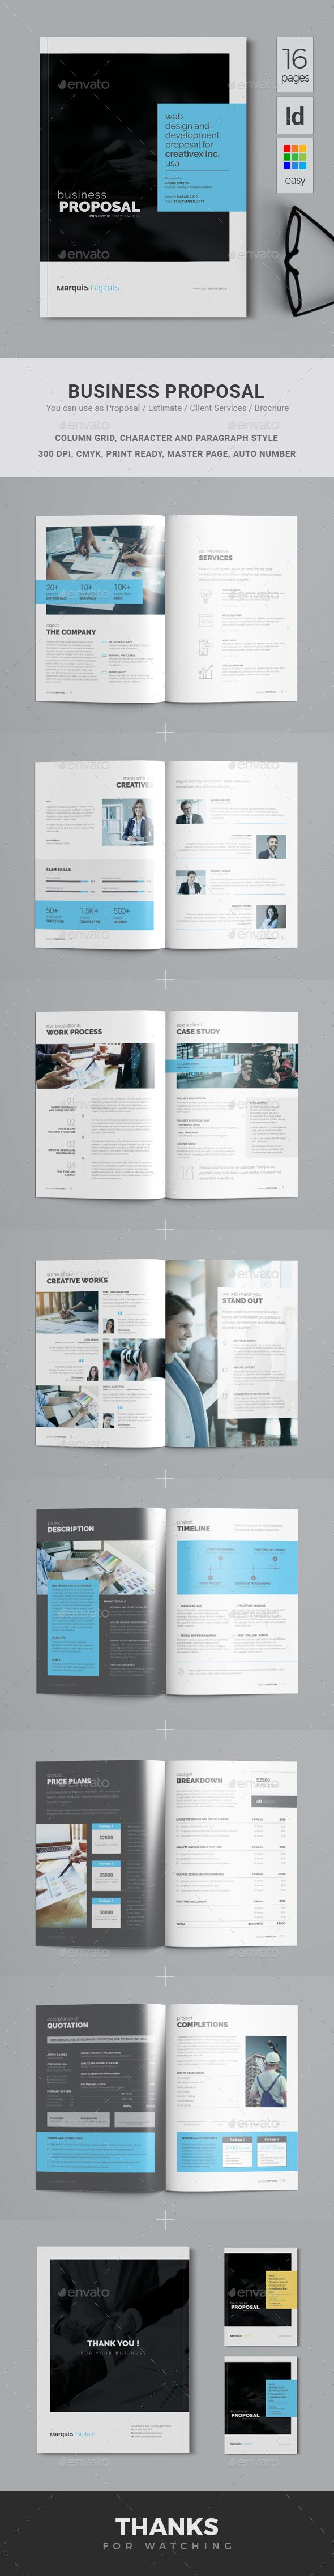 Proposal Business proposal template Proposal templates